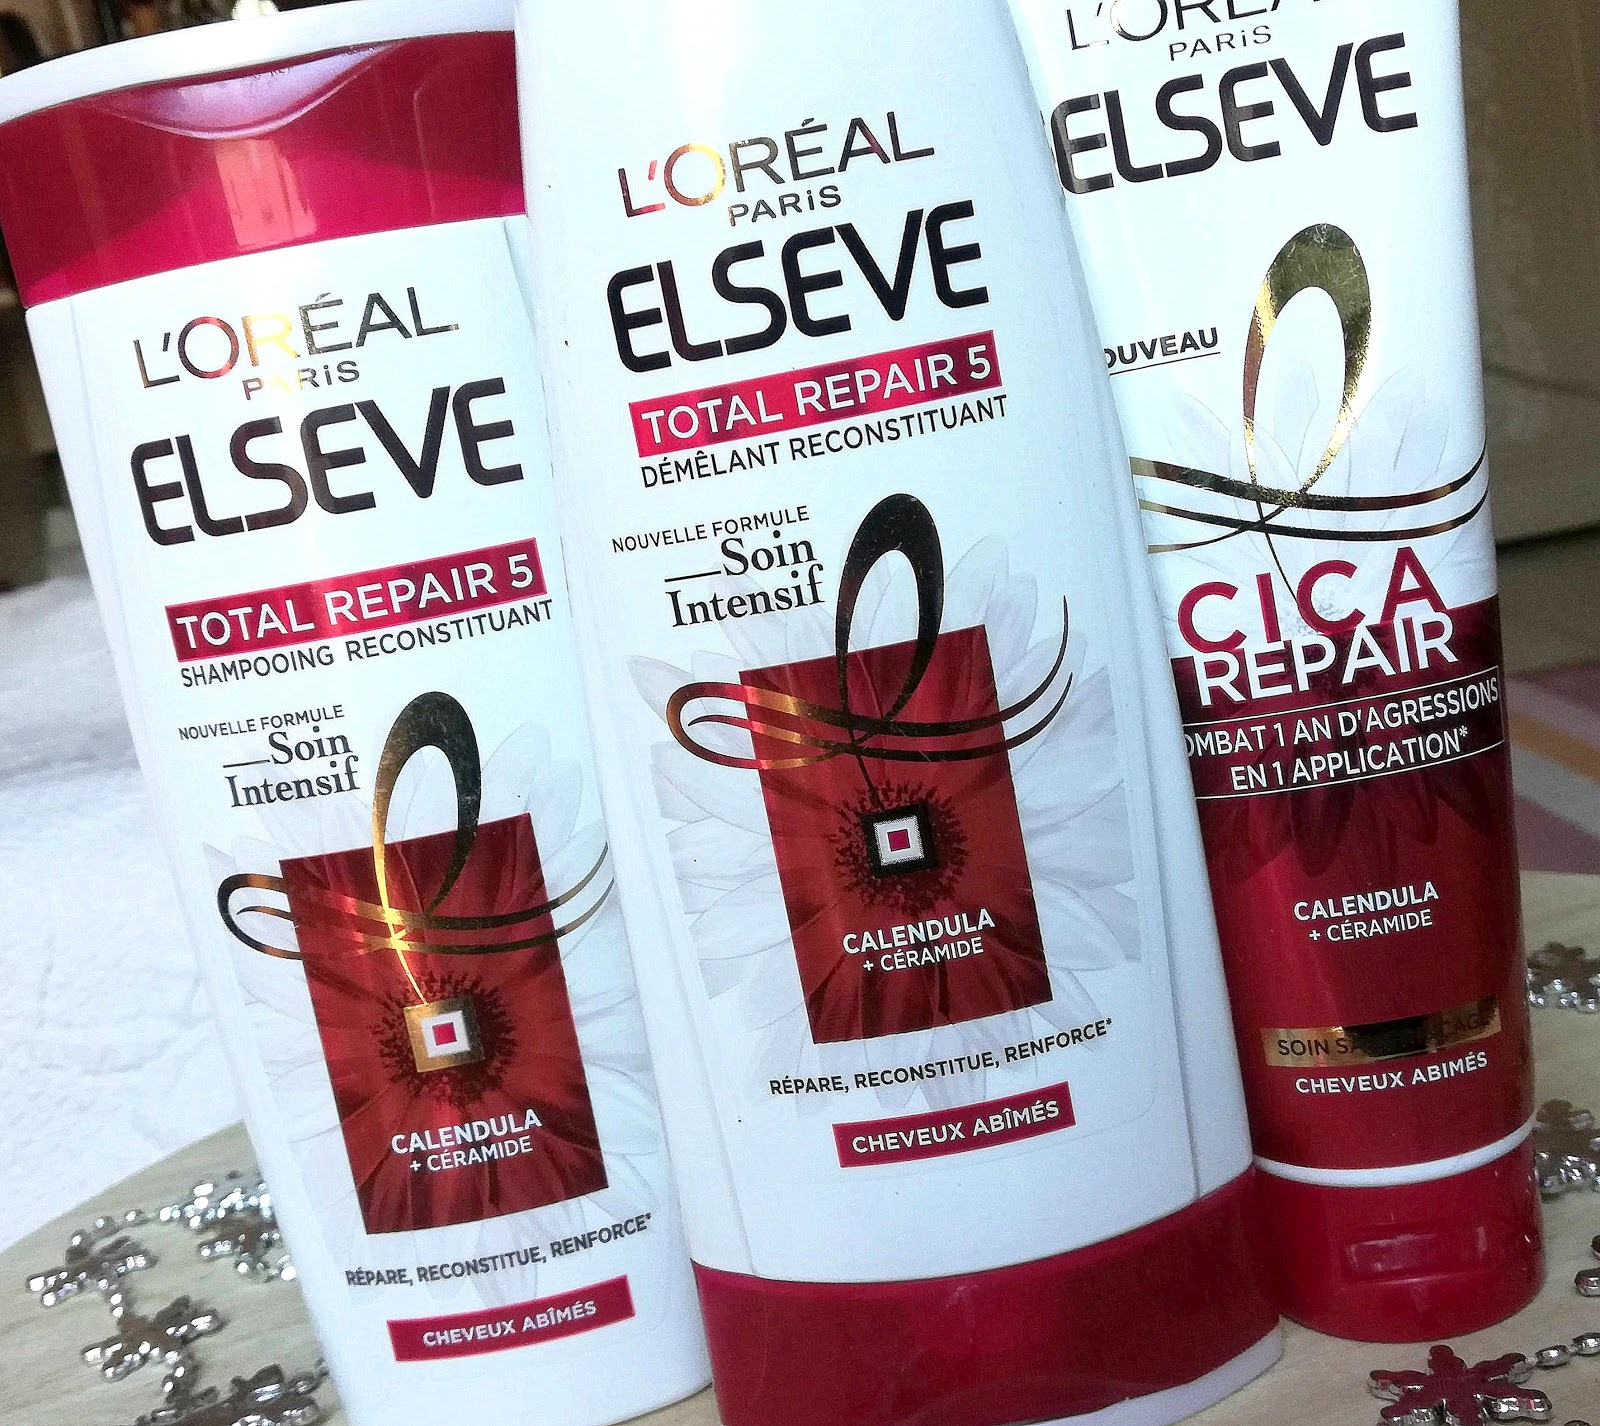 Elseve Total Repair 5 & le soin Cica Repair de L'Oréal